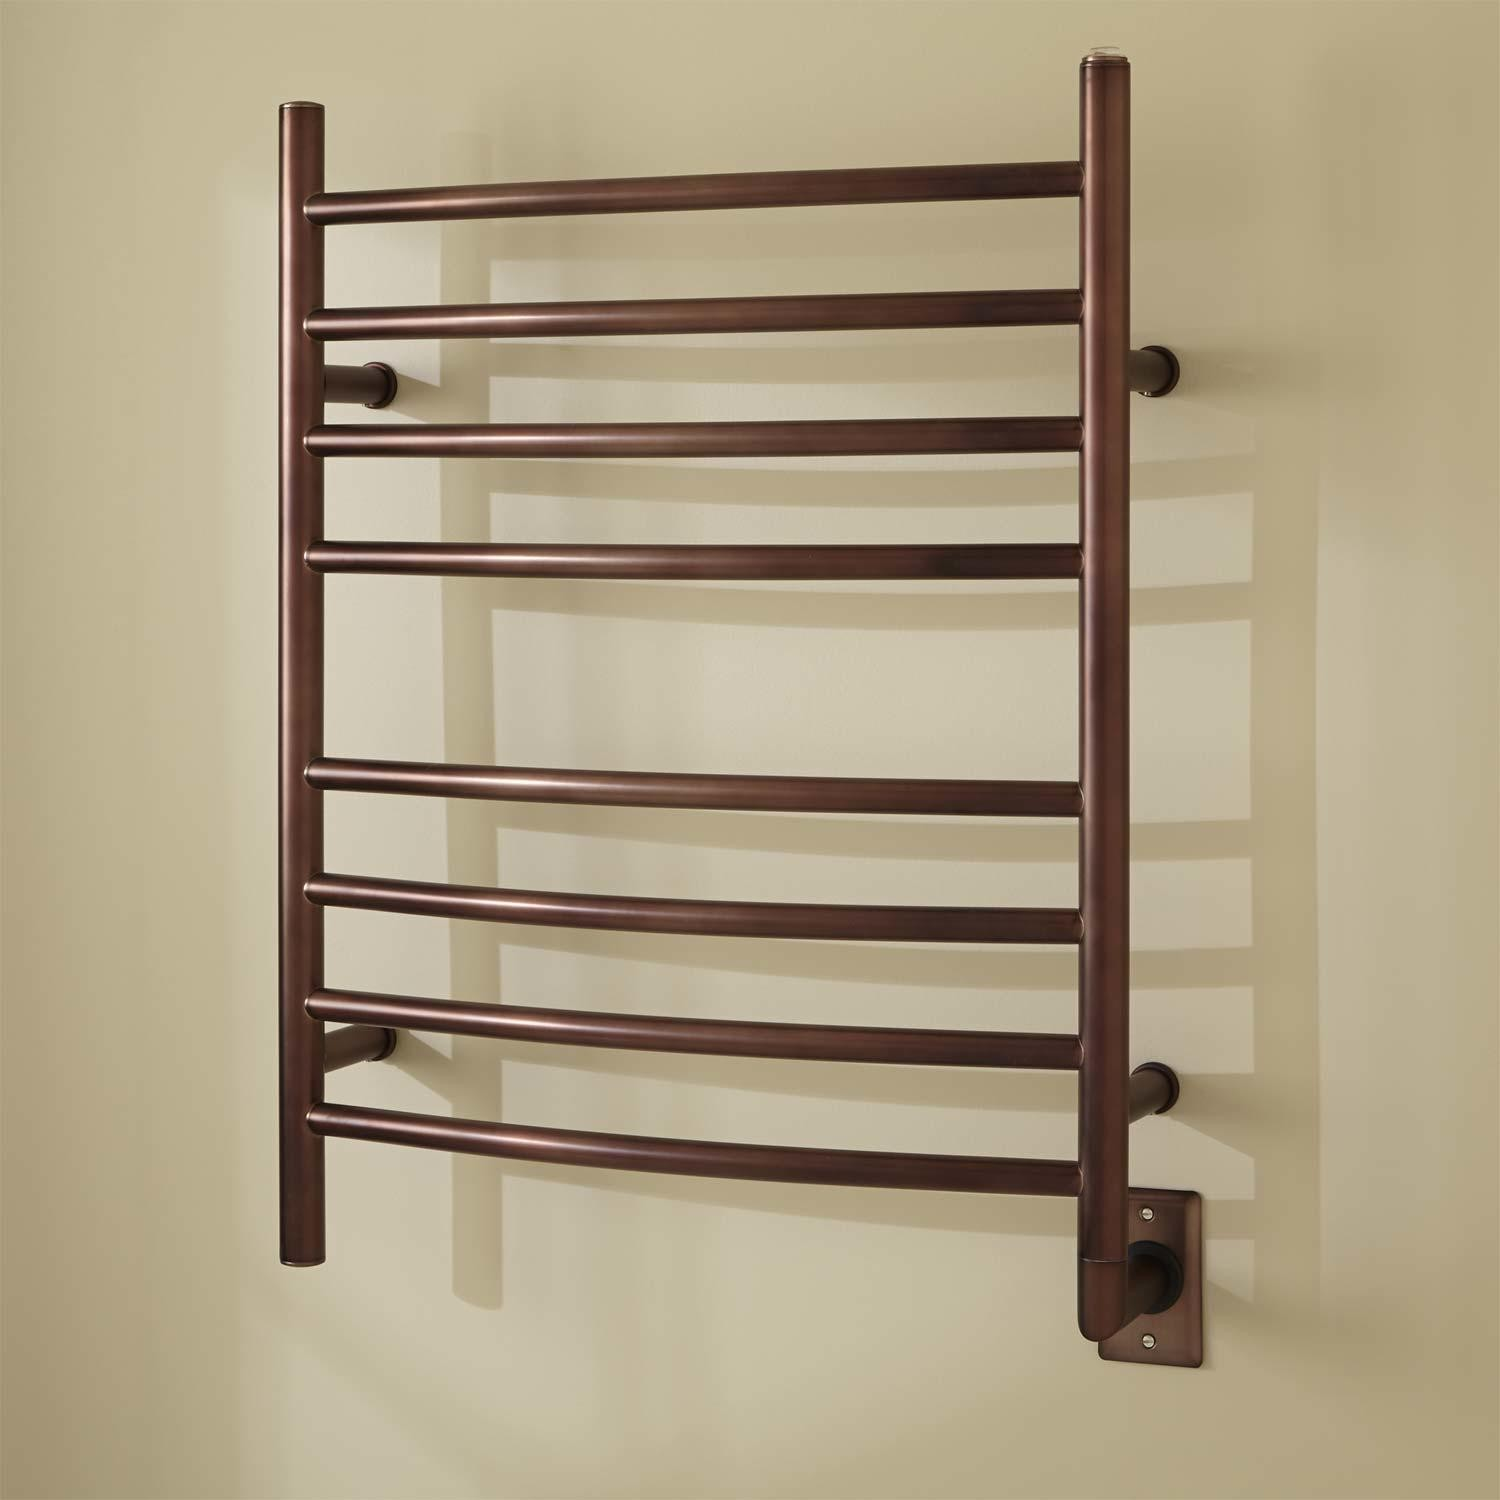 Heated Towel Warmer Rack | Wall Mounted Towel Warmer | Amba Towel Warmers